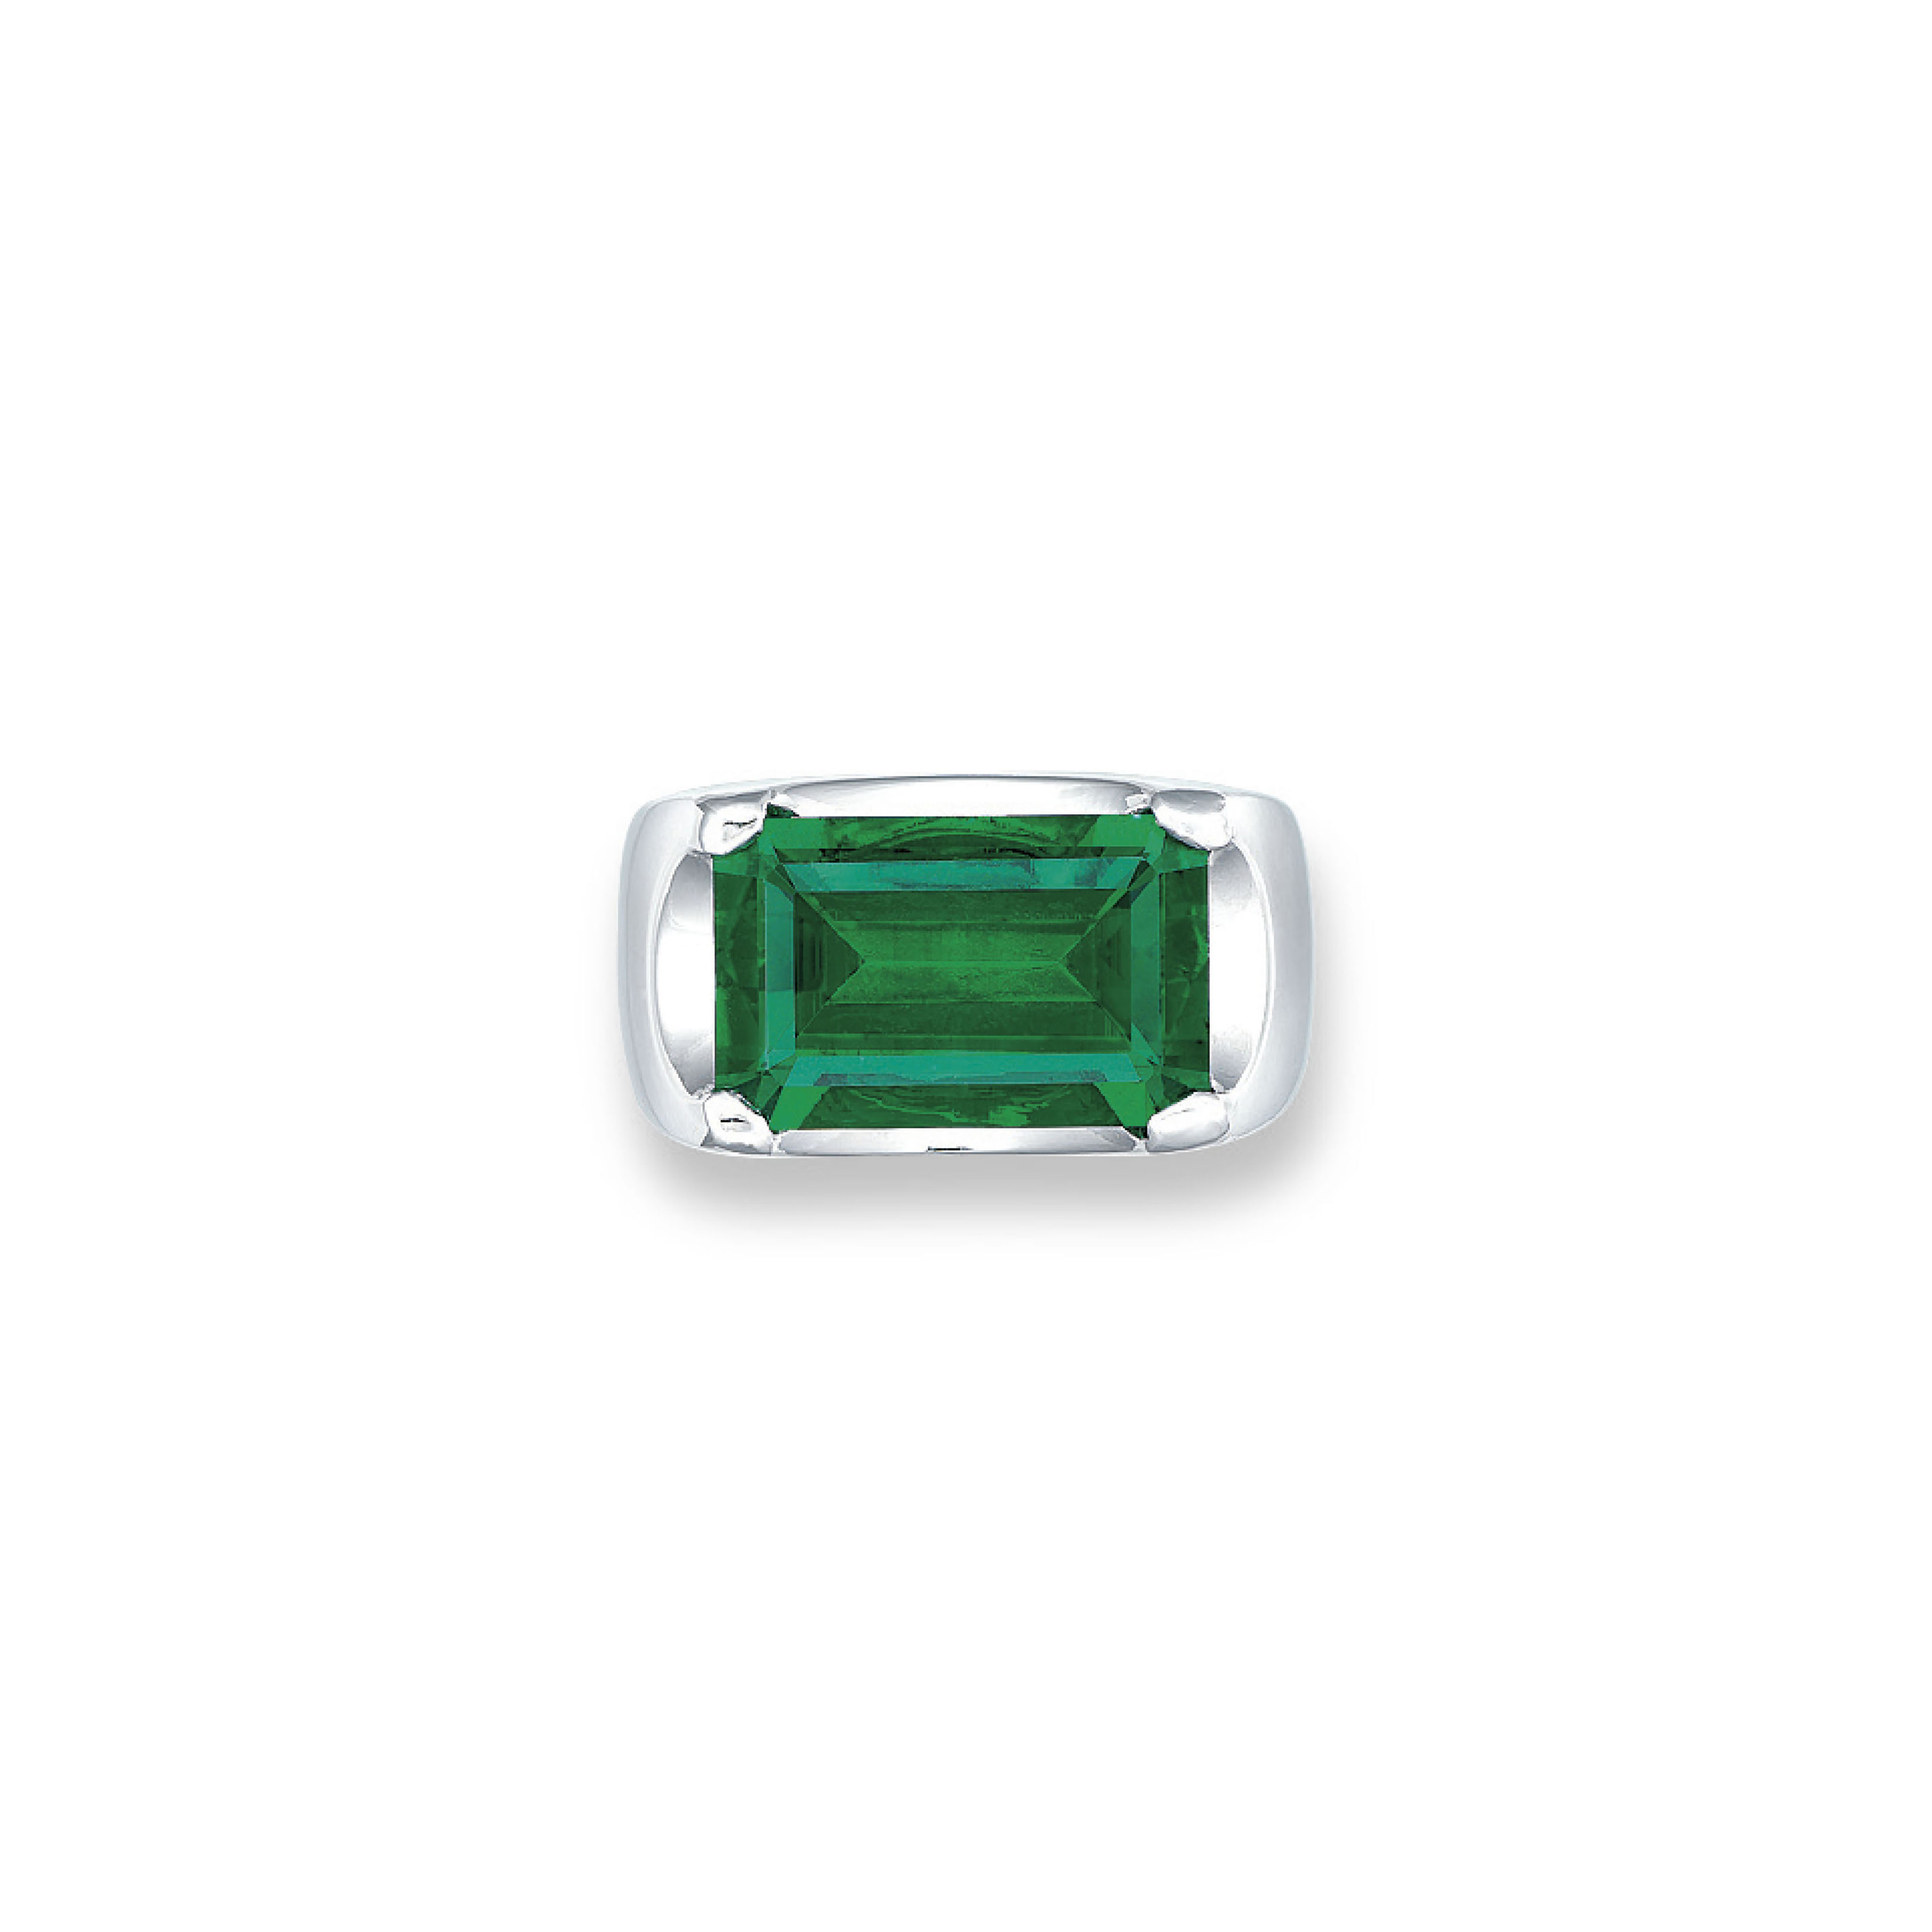 AN EXCEPTIONAL EMERALD RING